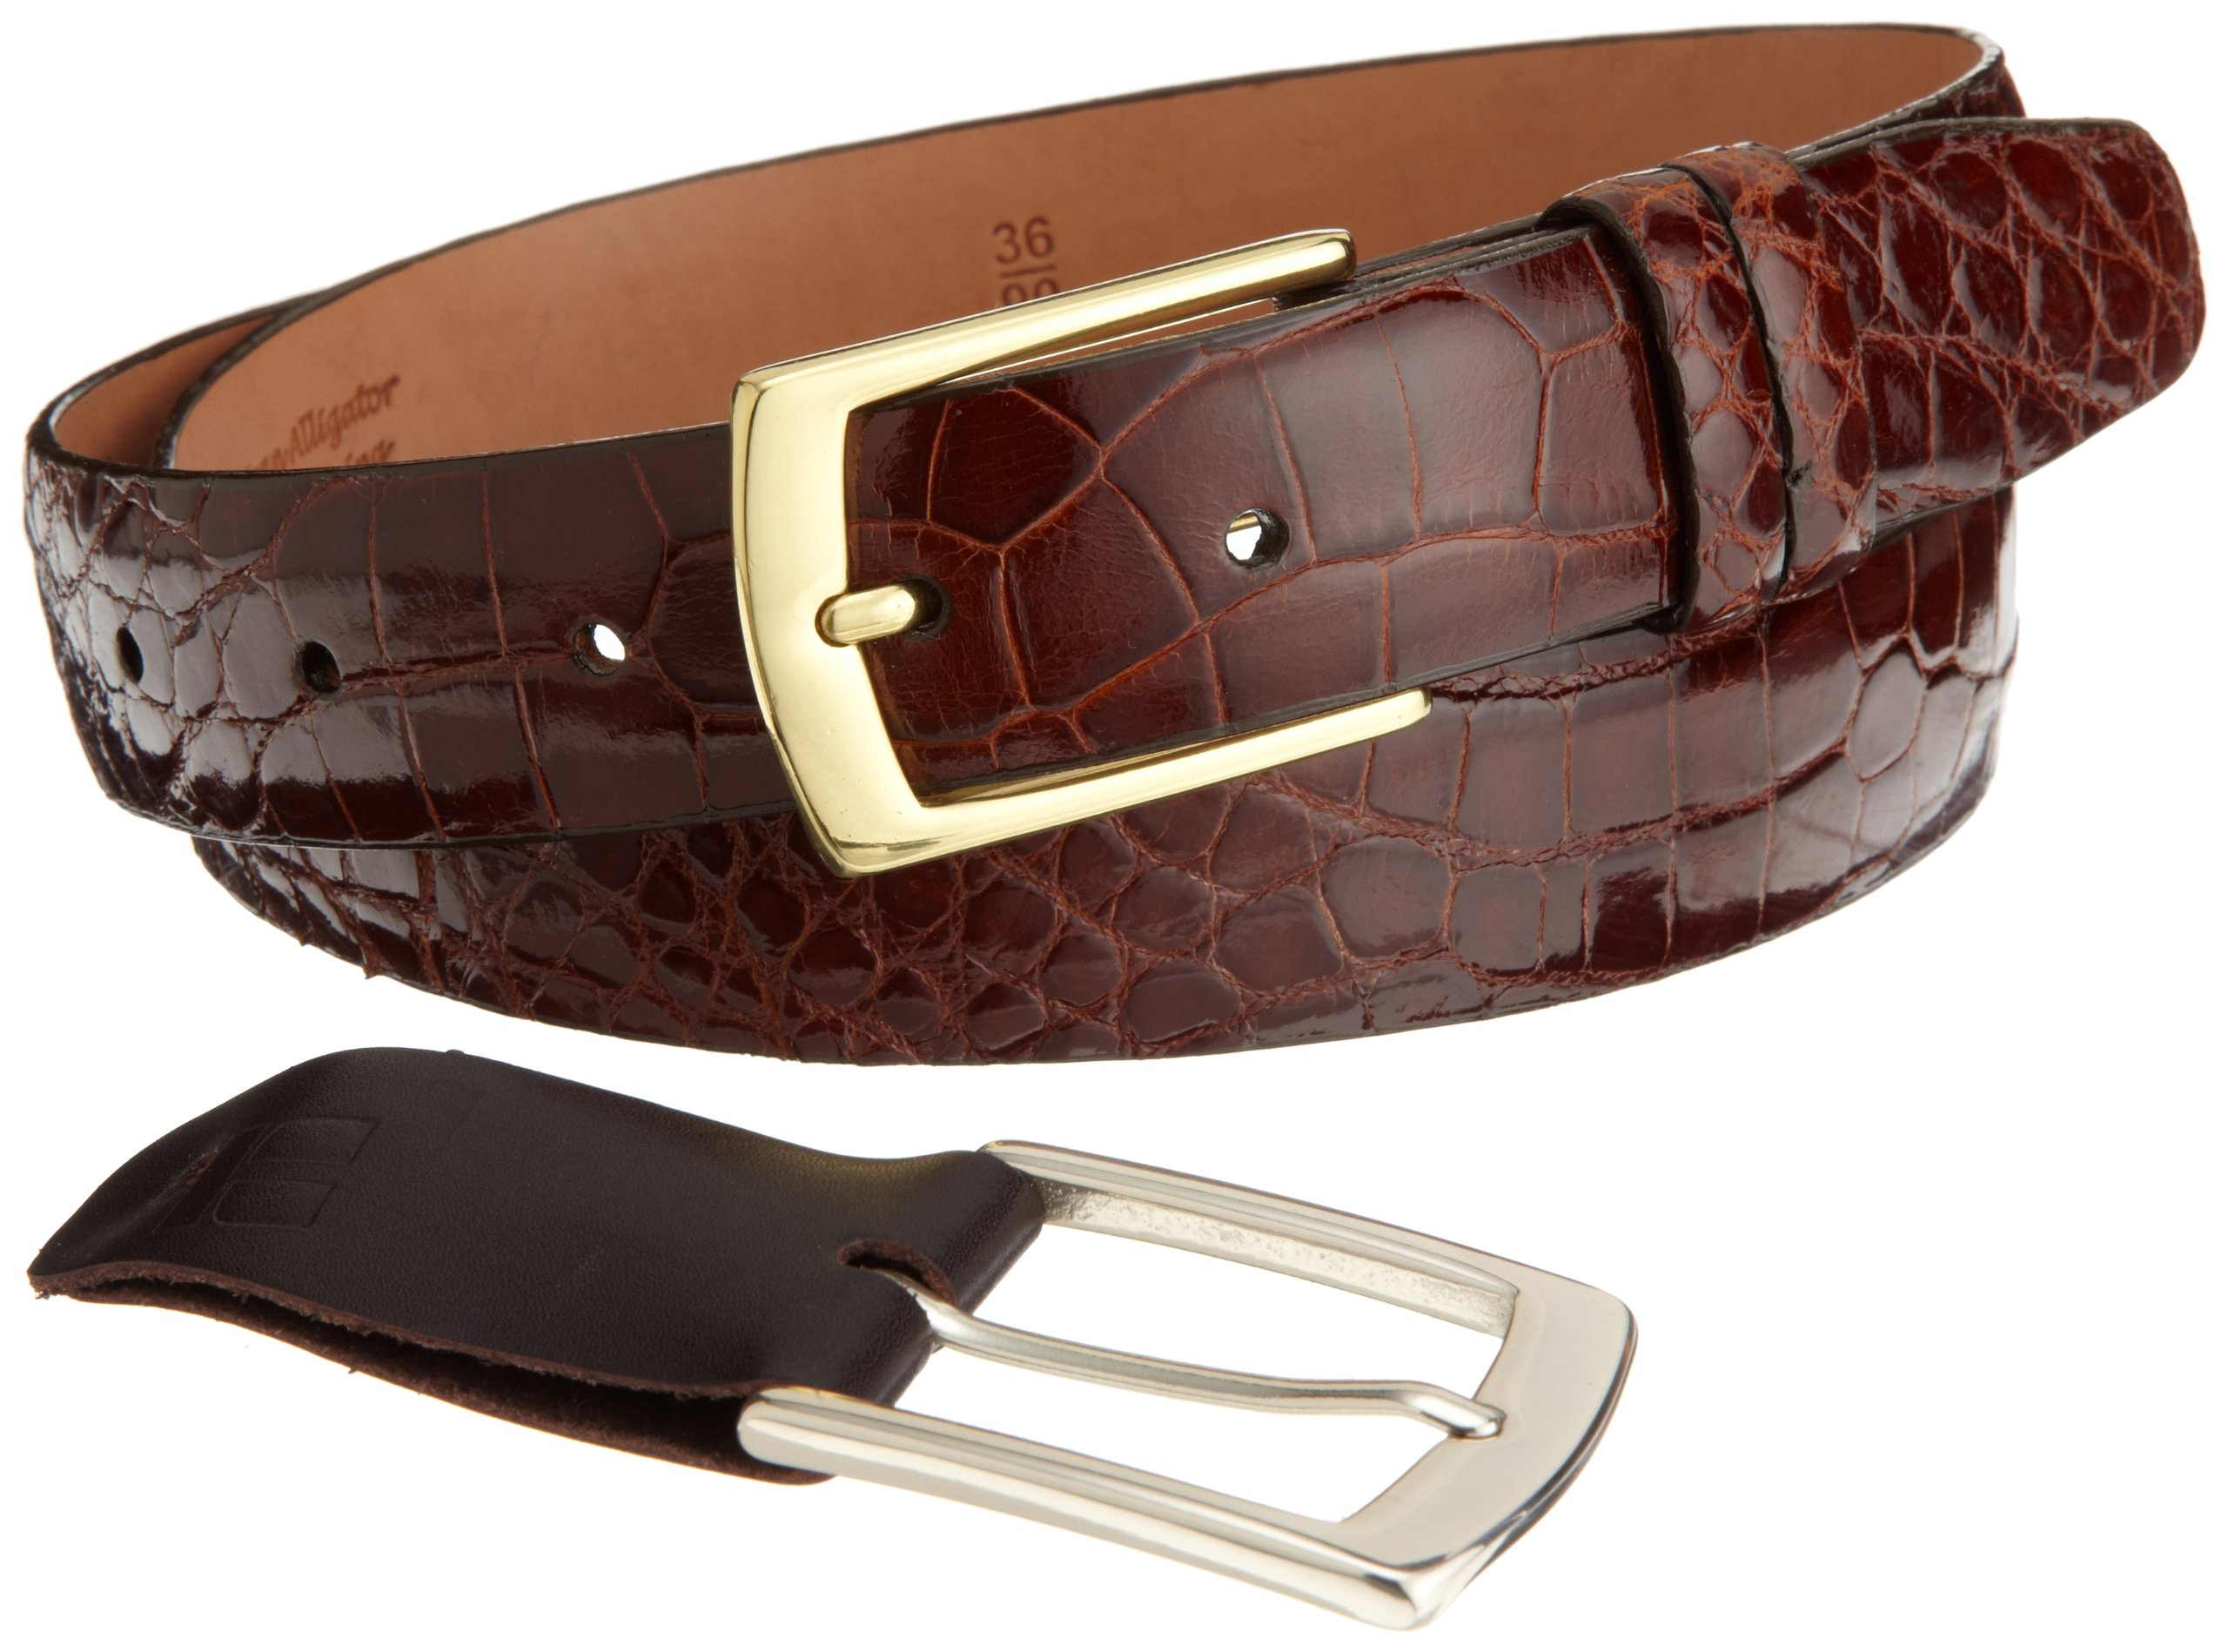 Trafalgar Men's Genuine Alligator Belt,Chestnut,42 by Trafalgar